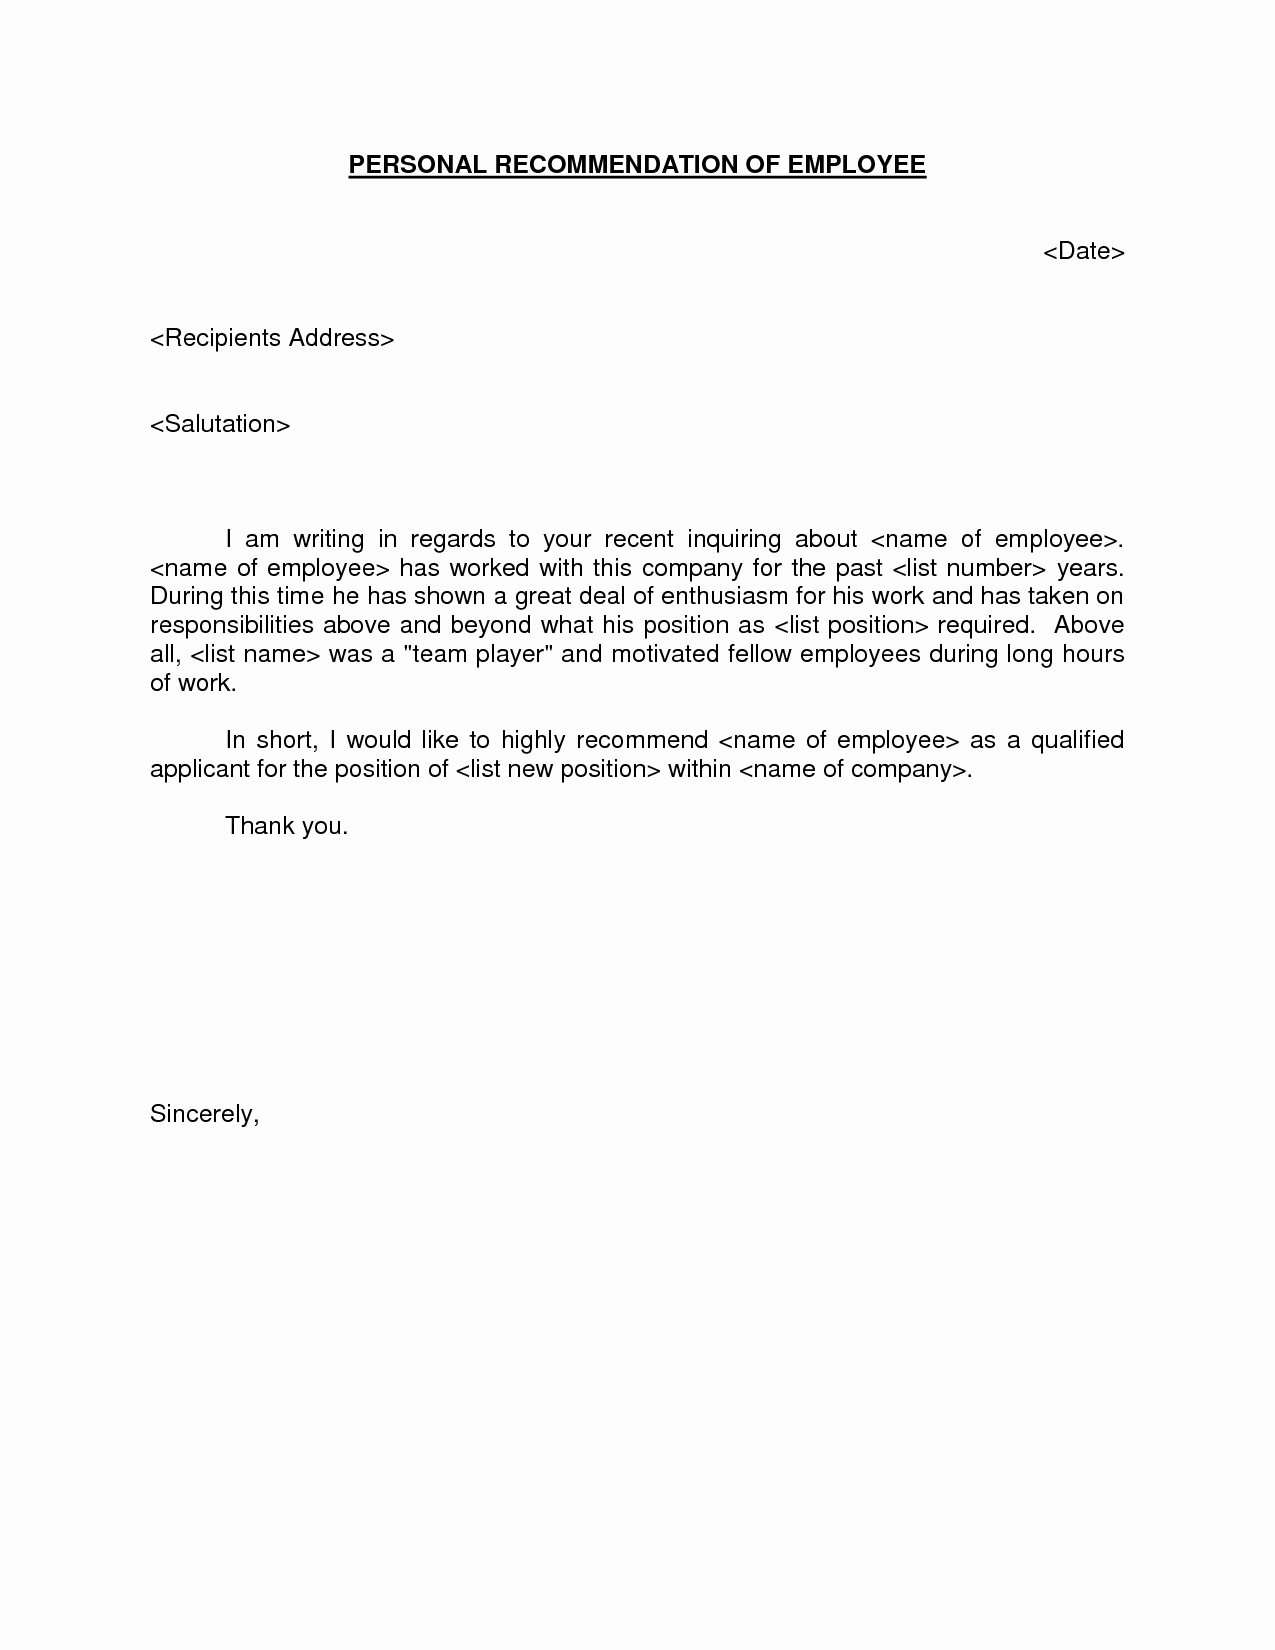 Letter Requesting Letter Of Recommendation Unique Personal Re Mendation Of Employee Request Letter Sample